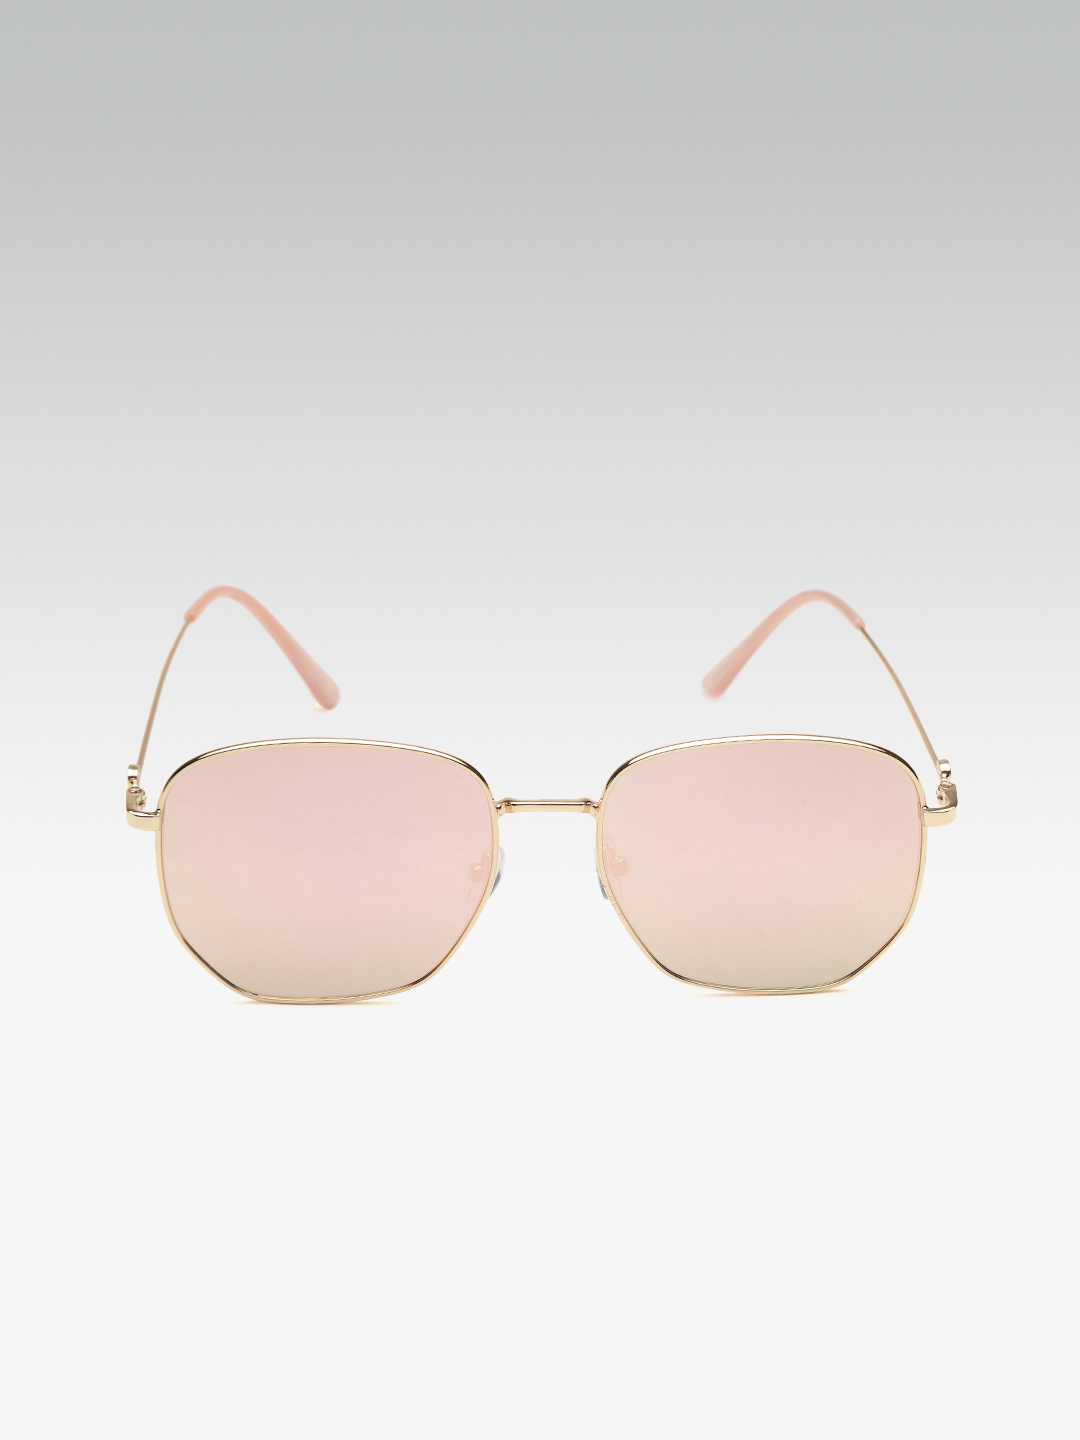 Sunglasses-Eyeing You Pink Reflective Sunglasses3